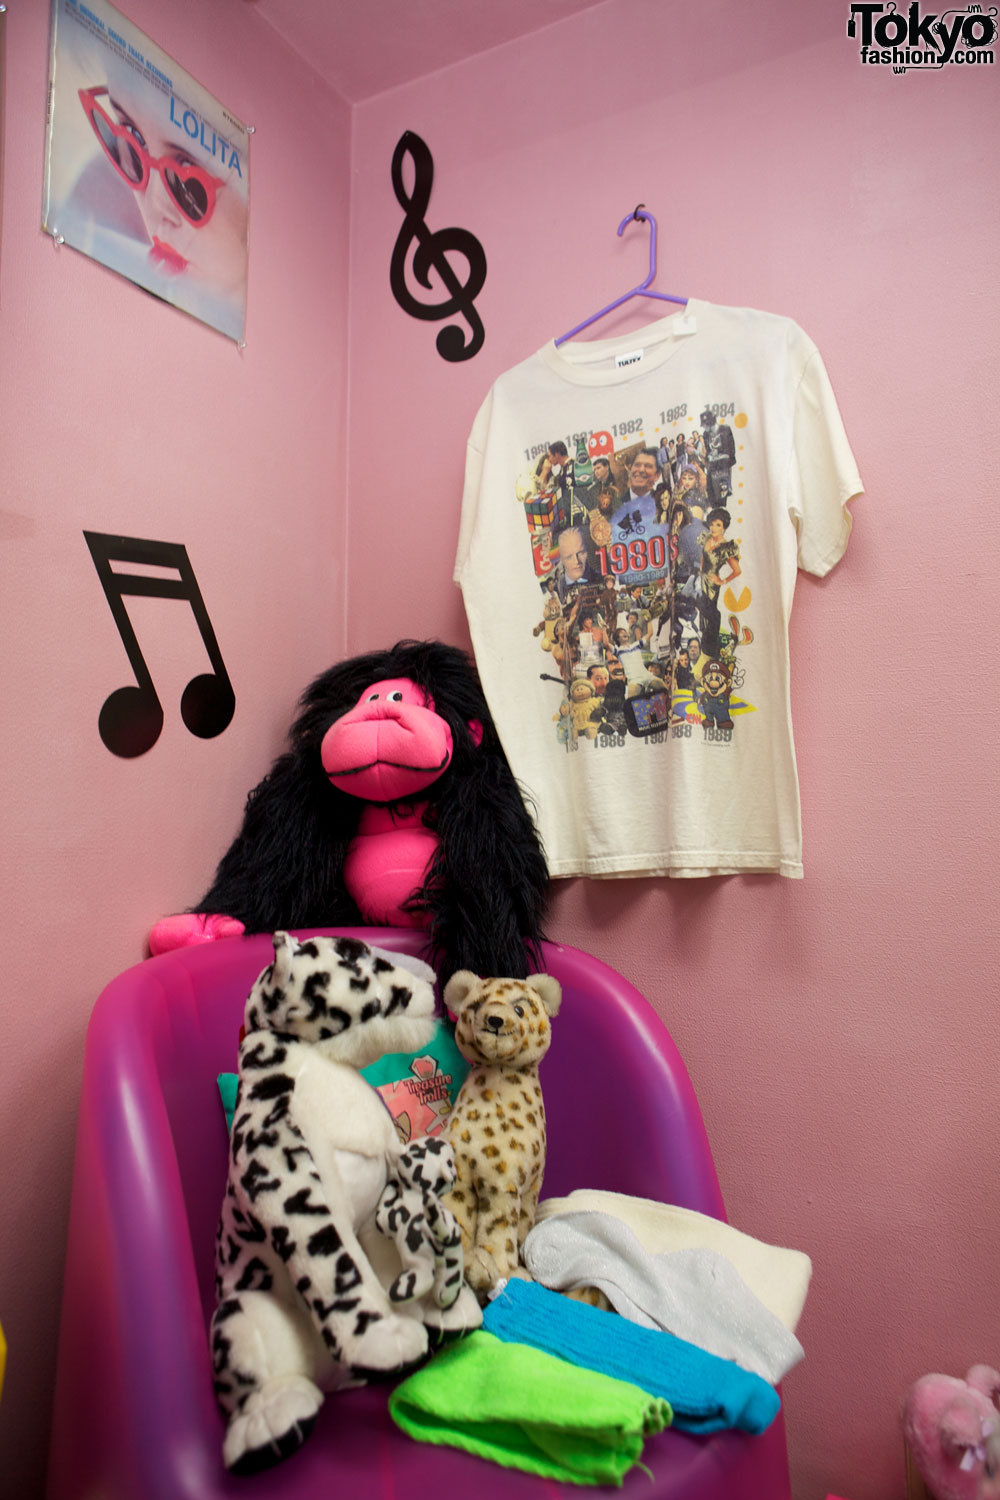 Spank Japanese Quot 80s Pop Disco Quot Fashion In Tokyo